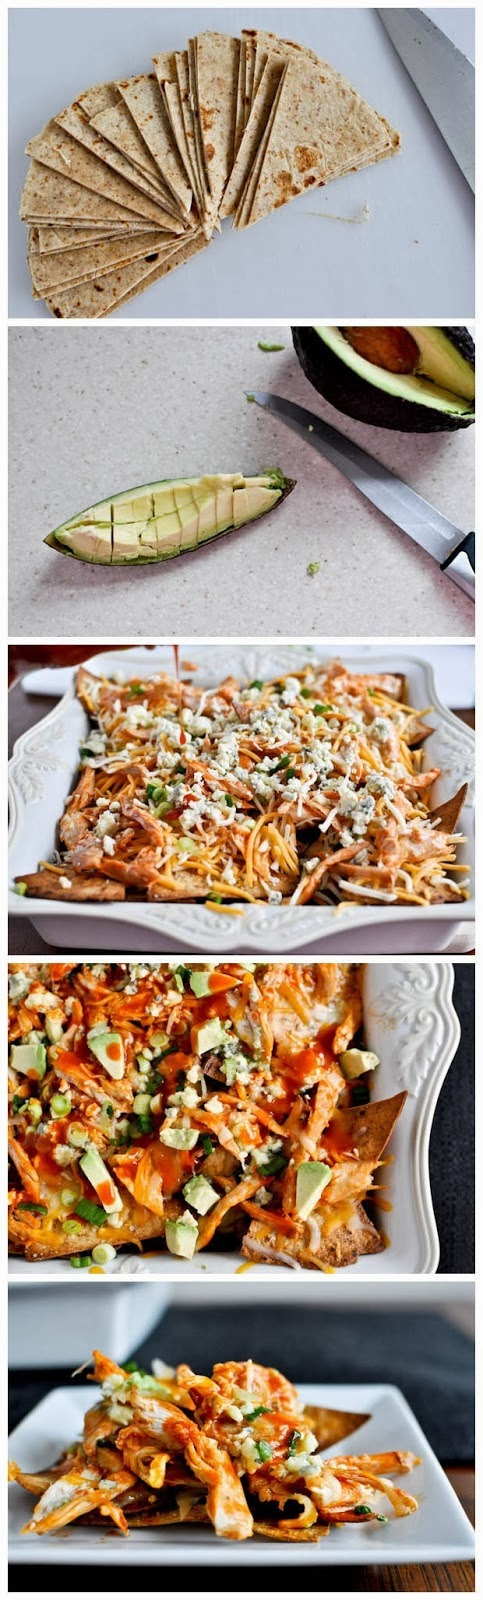 layered baked buffalo chicken nachos